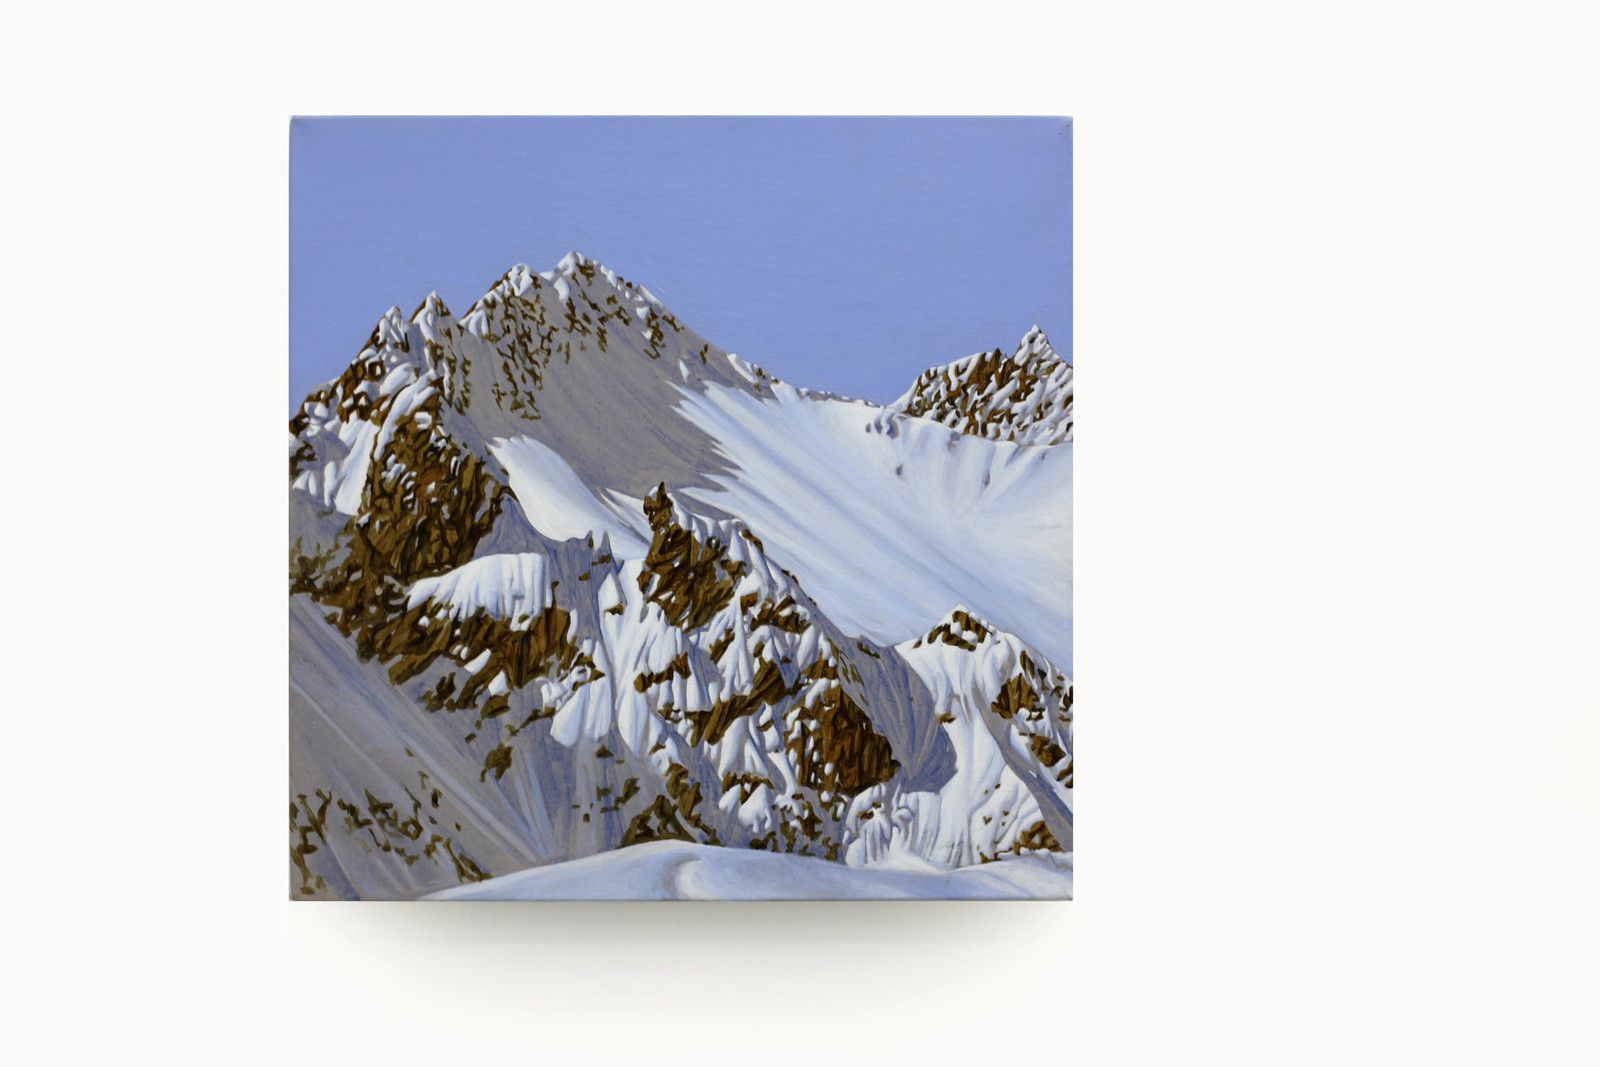 """Mont-Blanc"", 2018 de Hervé HEUZÉ - Courtesy Galerie RICHARD - PARIS © Photo Éric Simon"